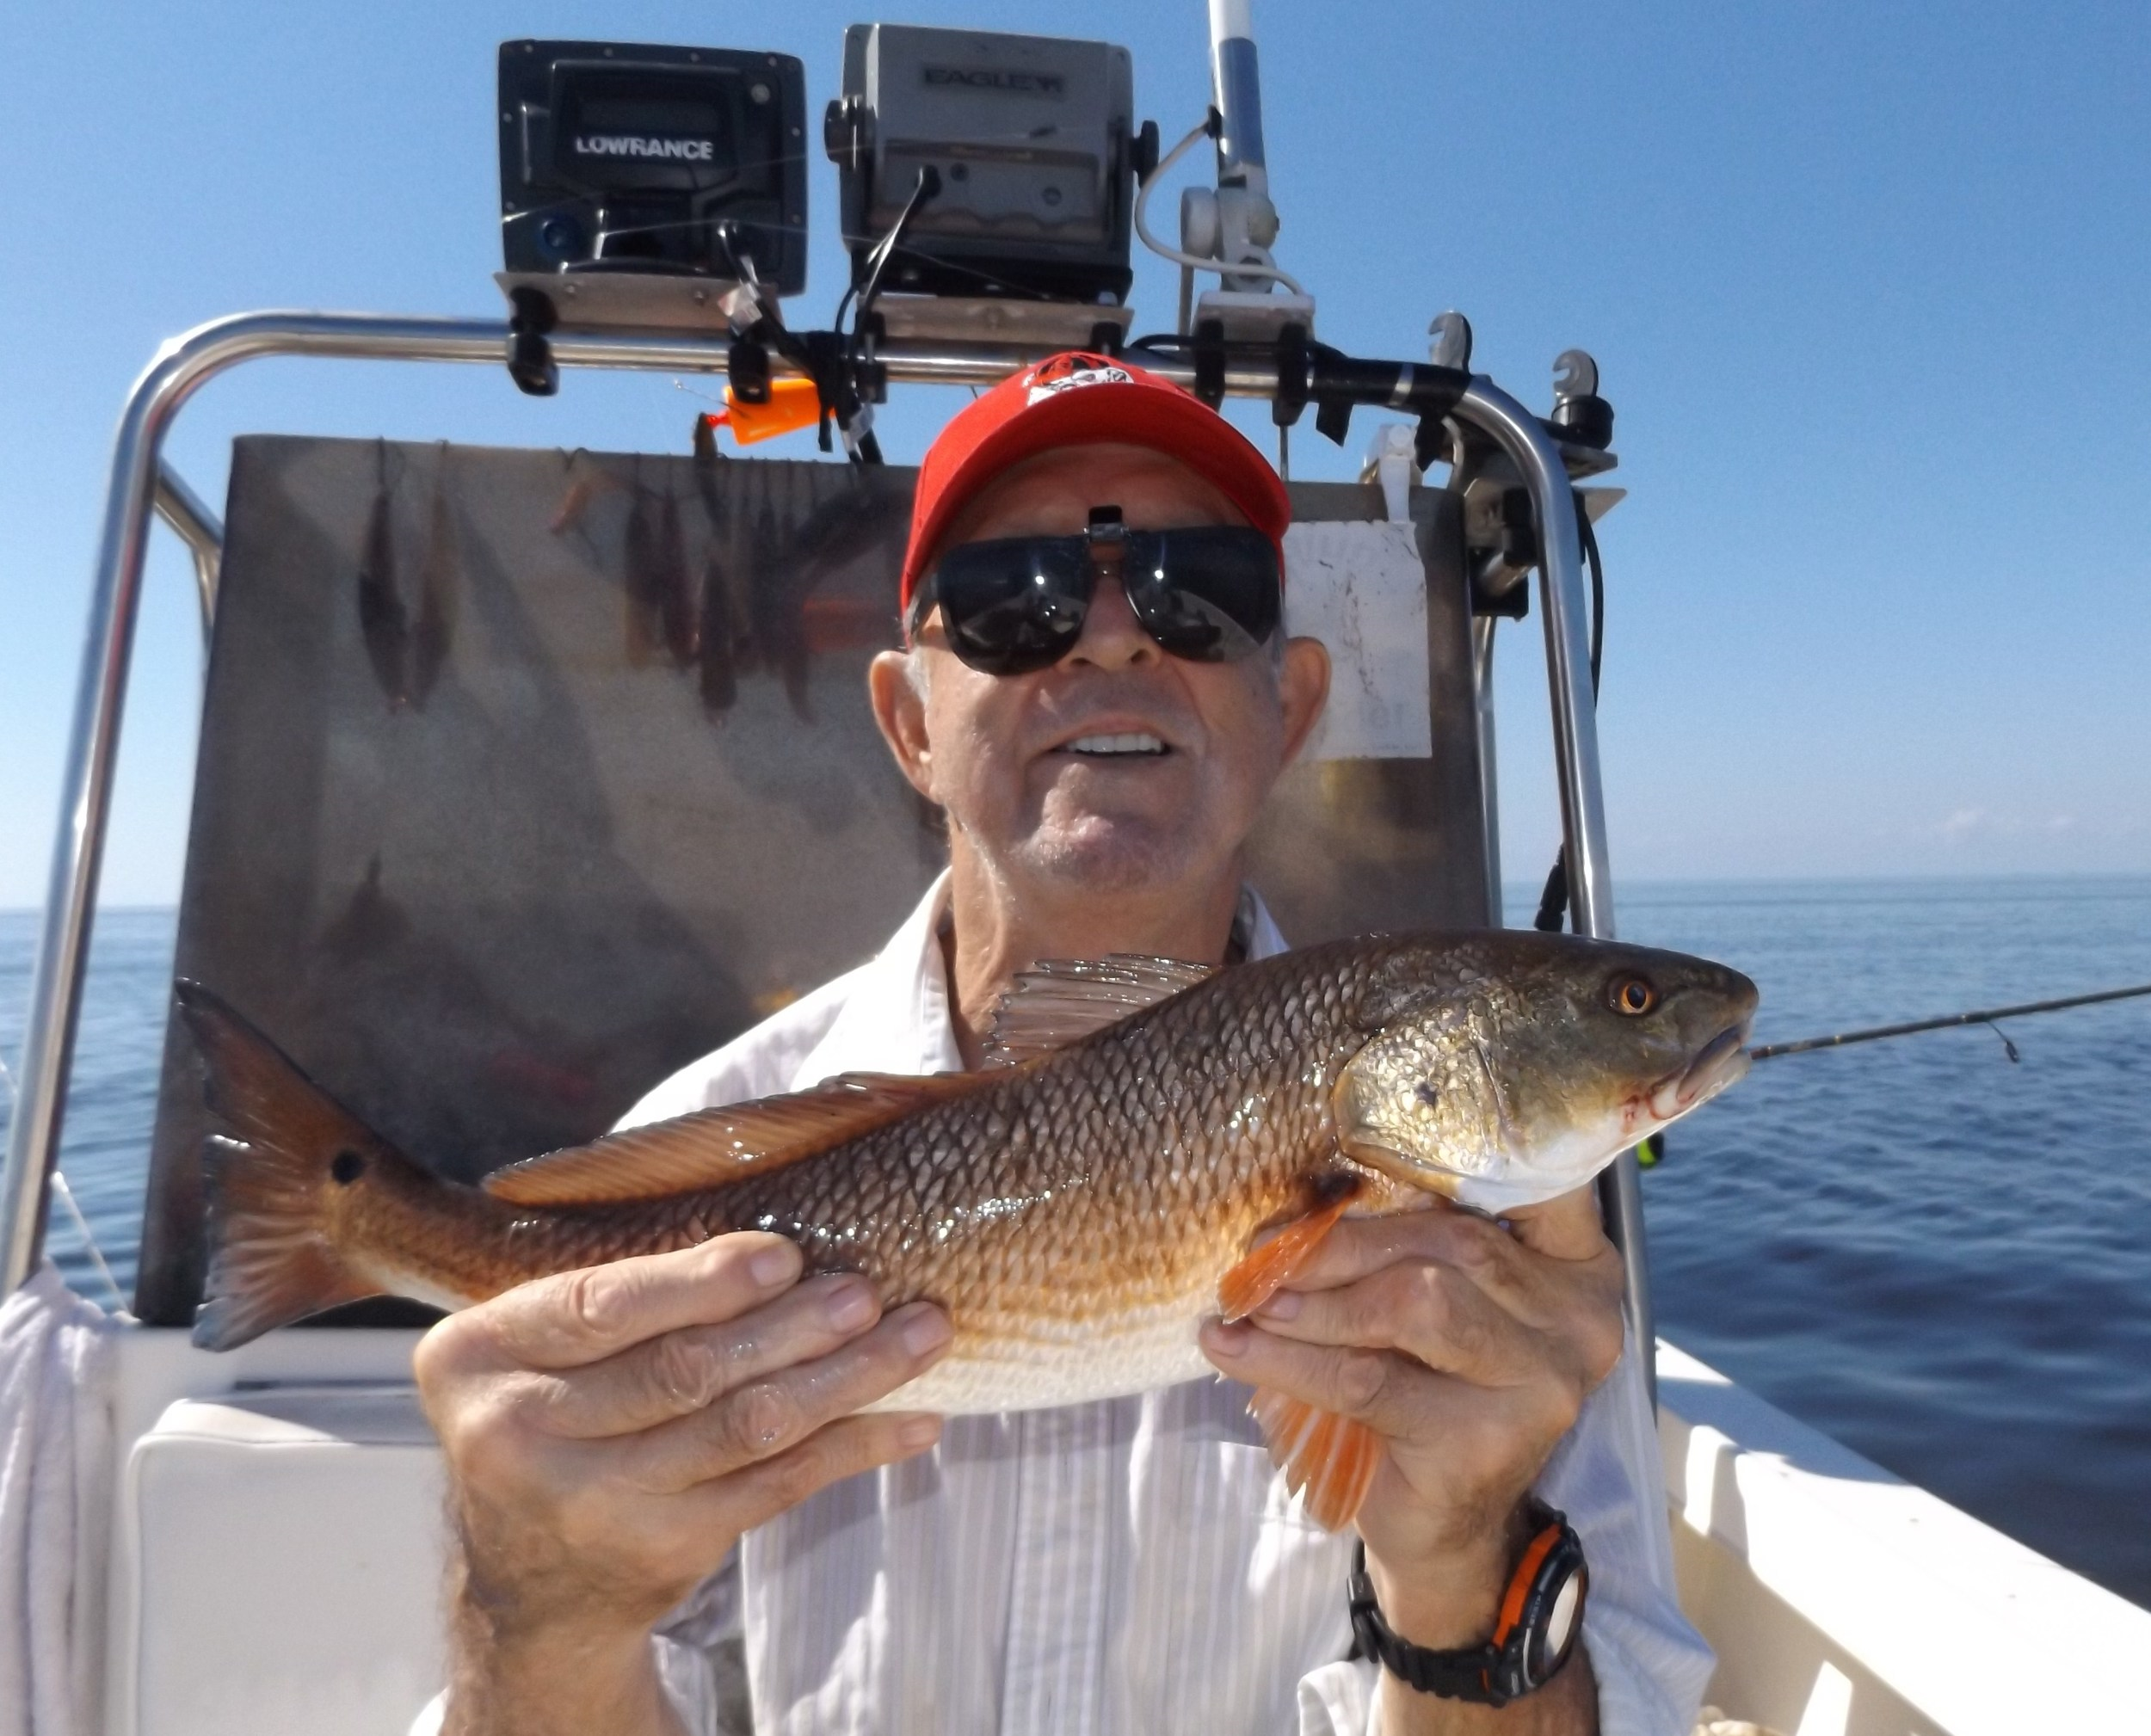 Coy Crider of Ray City , Ga. with his first-ever redfish!